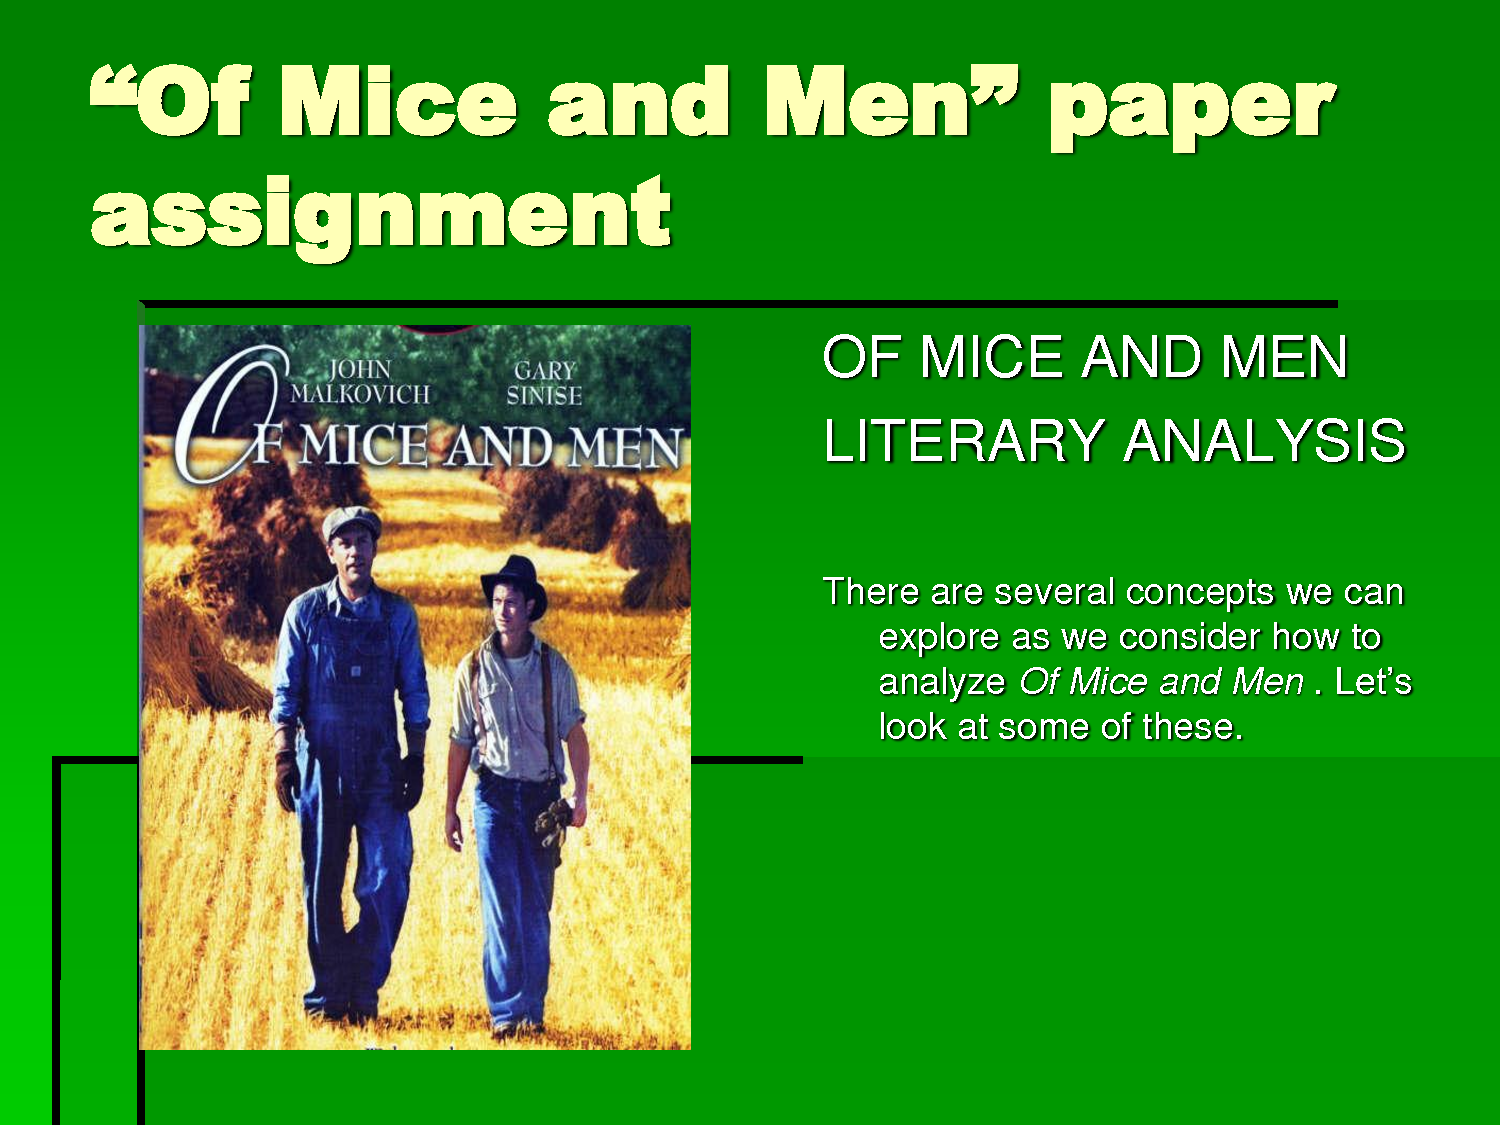 What are 3 quotes that show Lennie's simple-mindedness in Of Mice and Men?